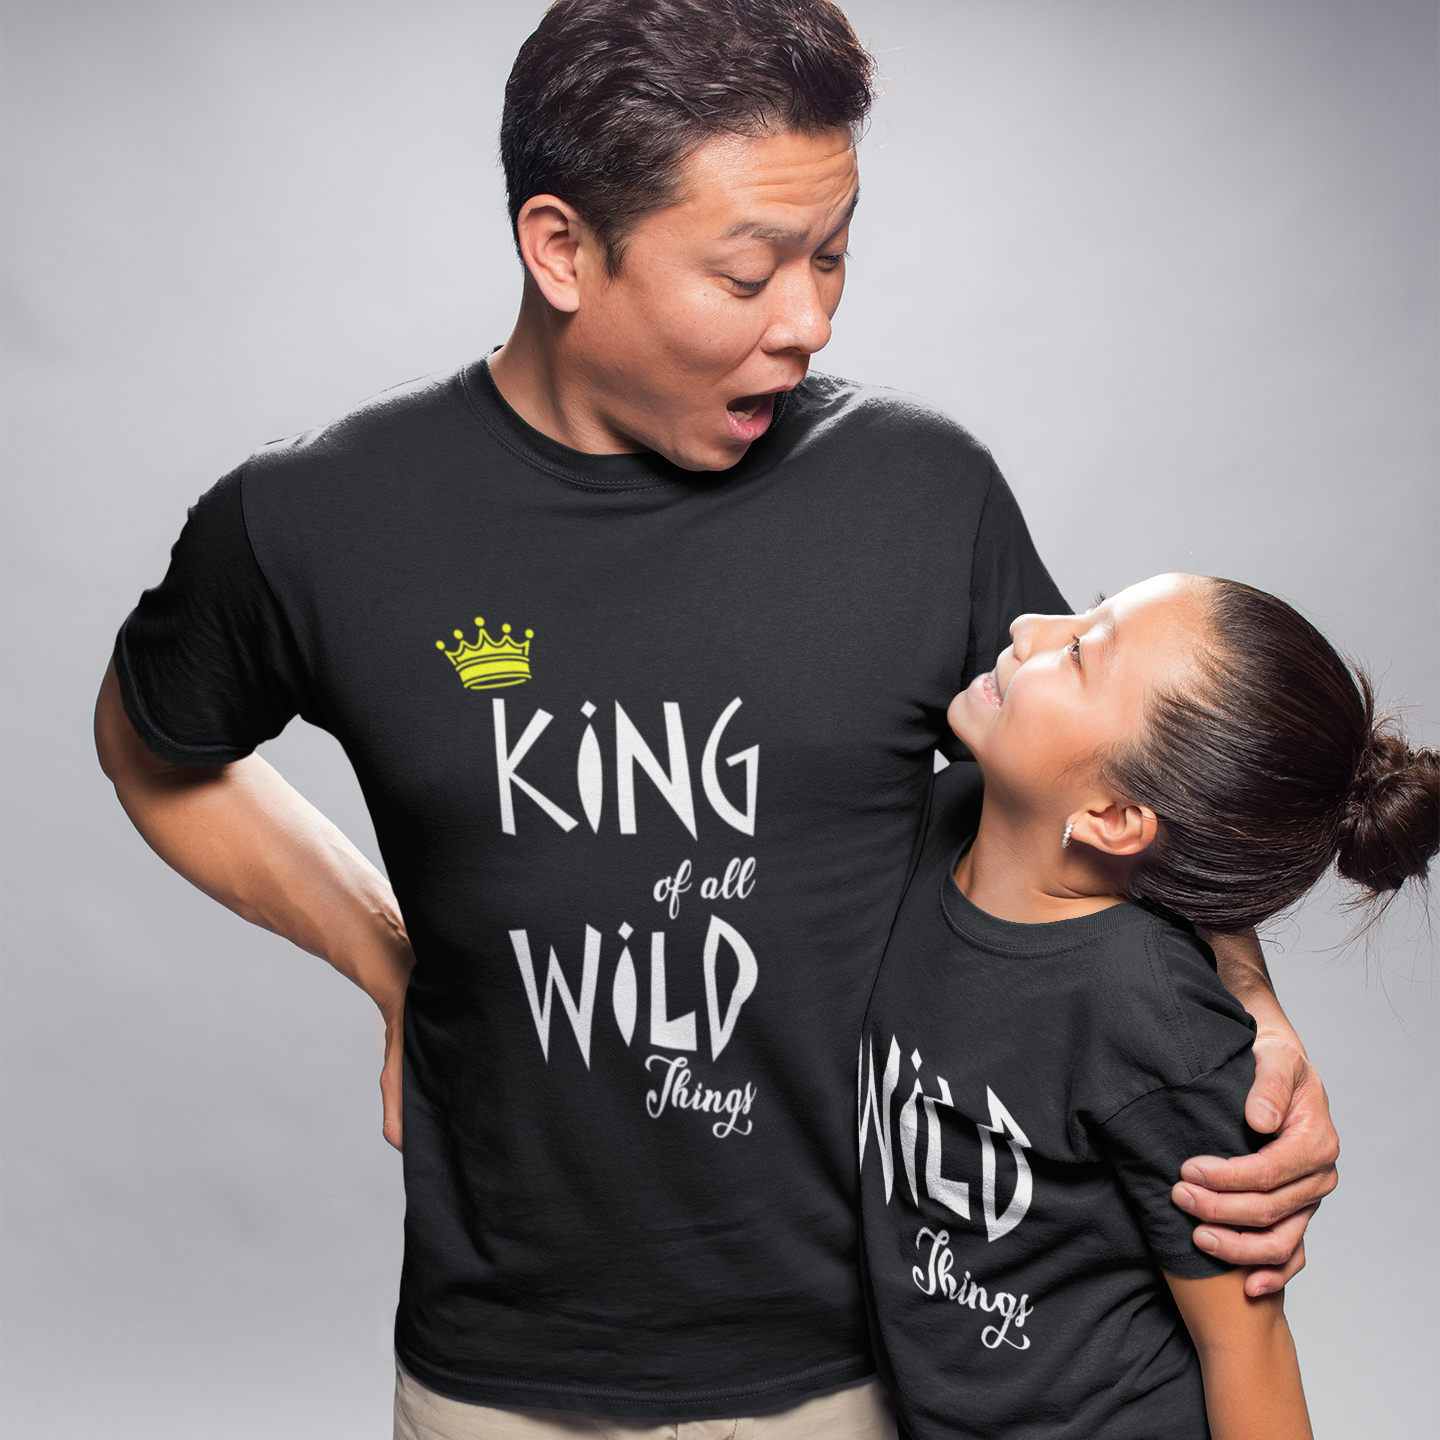 Sprinklecart King of All Wild Things & Wild Things | Dad and Daughter Matching Tees (Black)